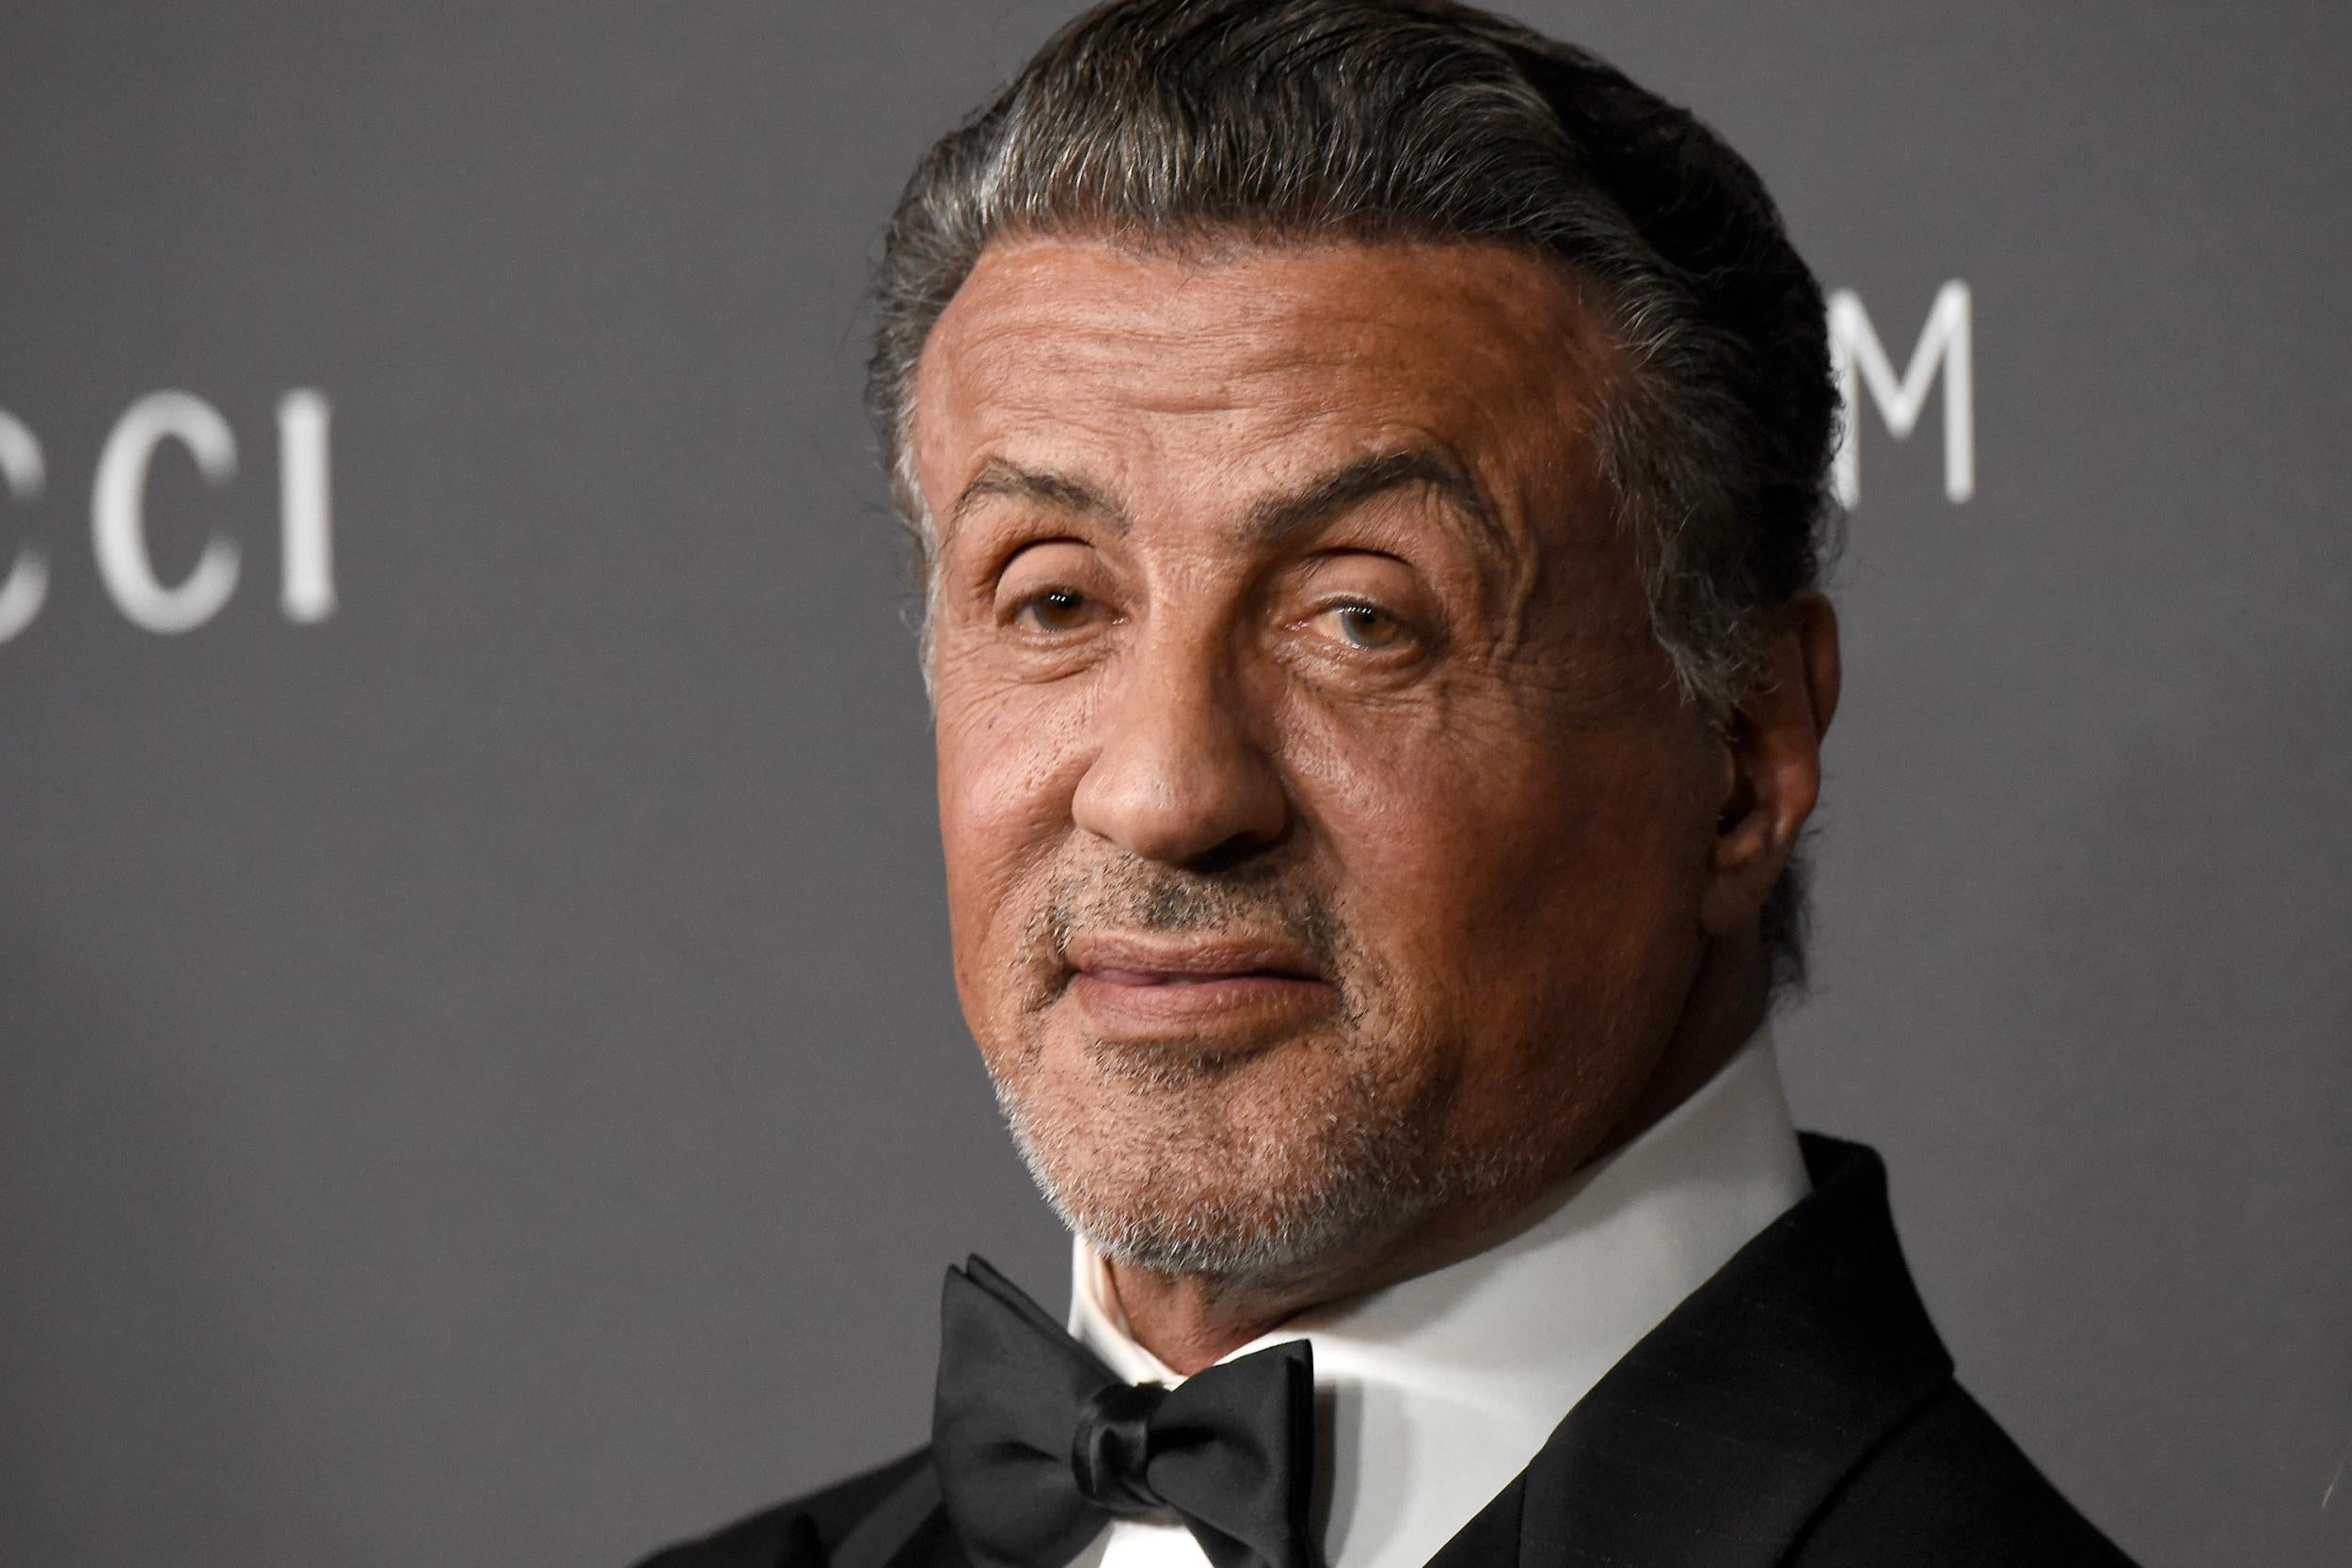 Sylvester Stallone death hoax 'sick and demented', says